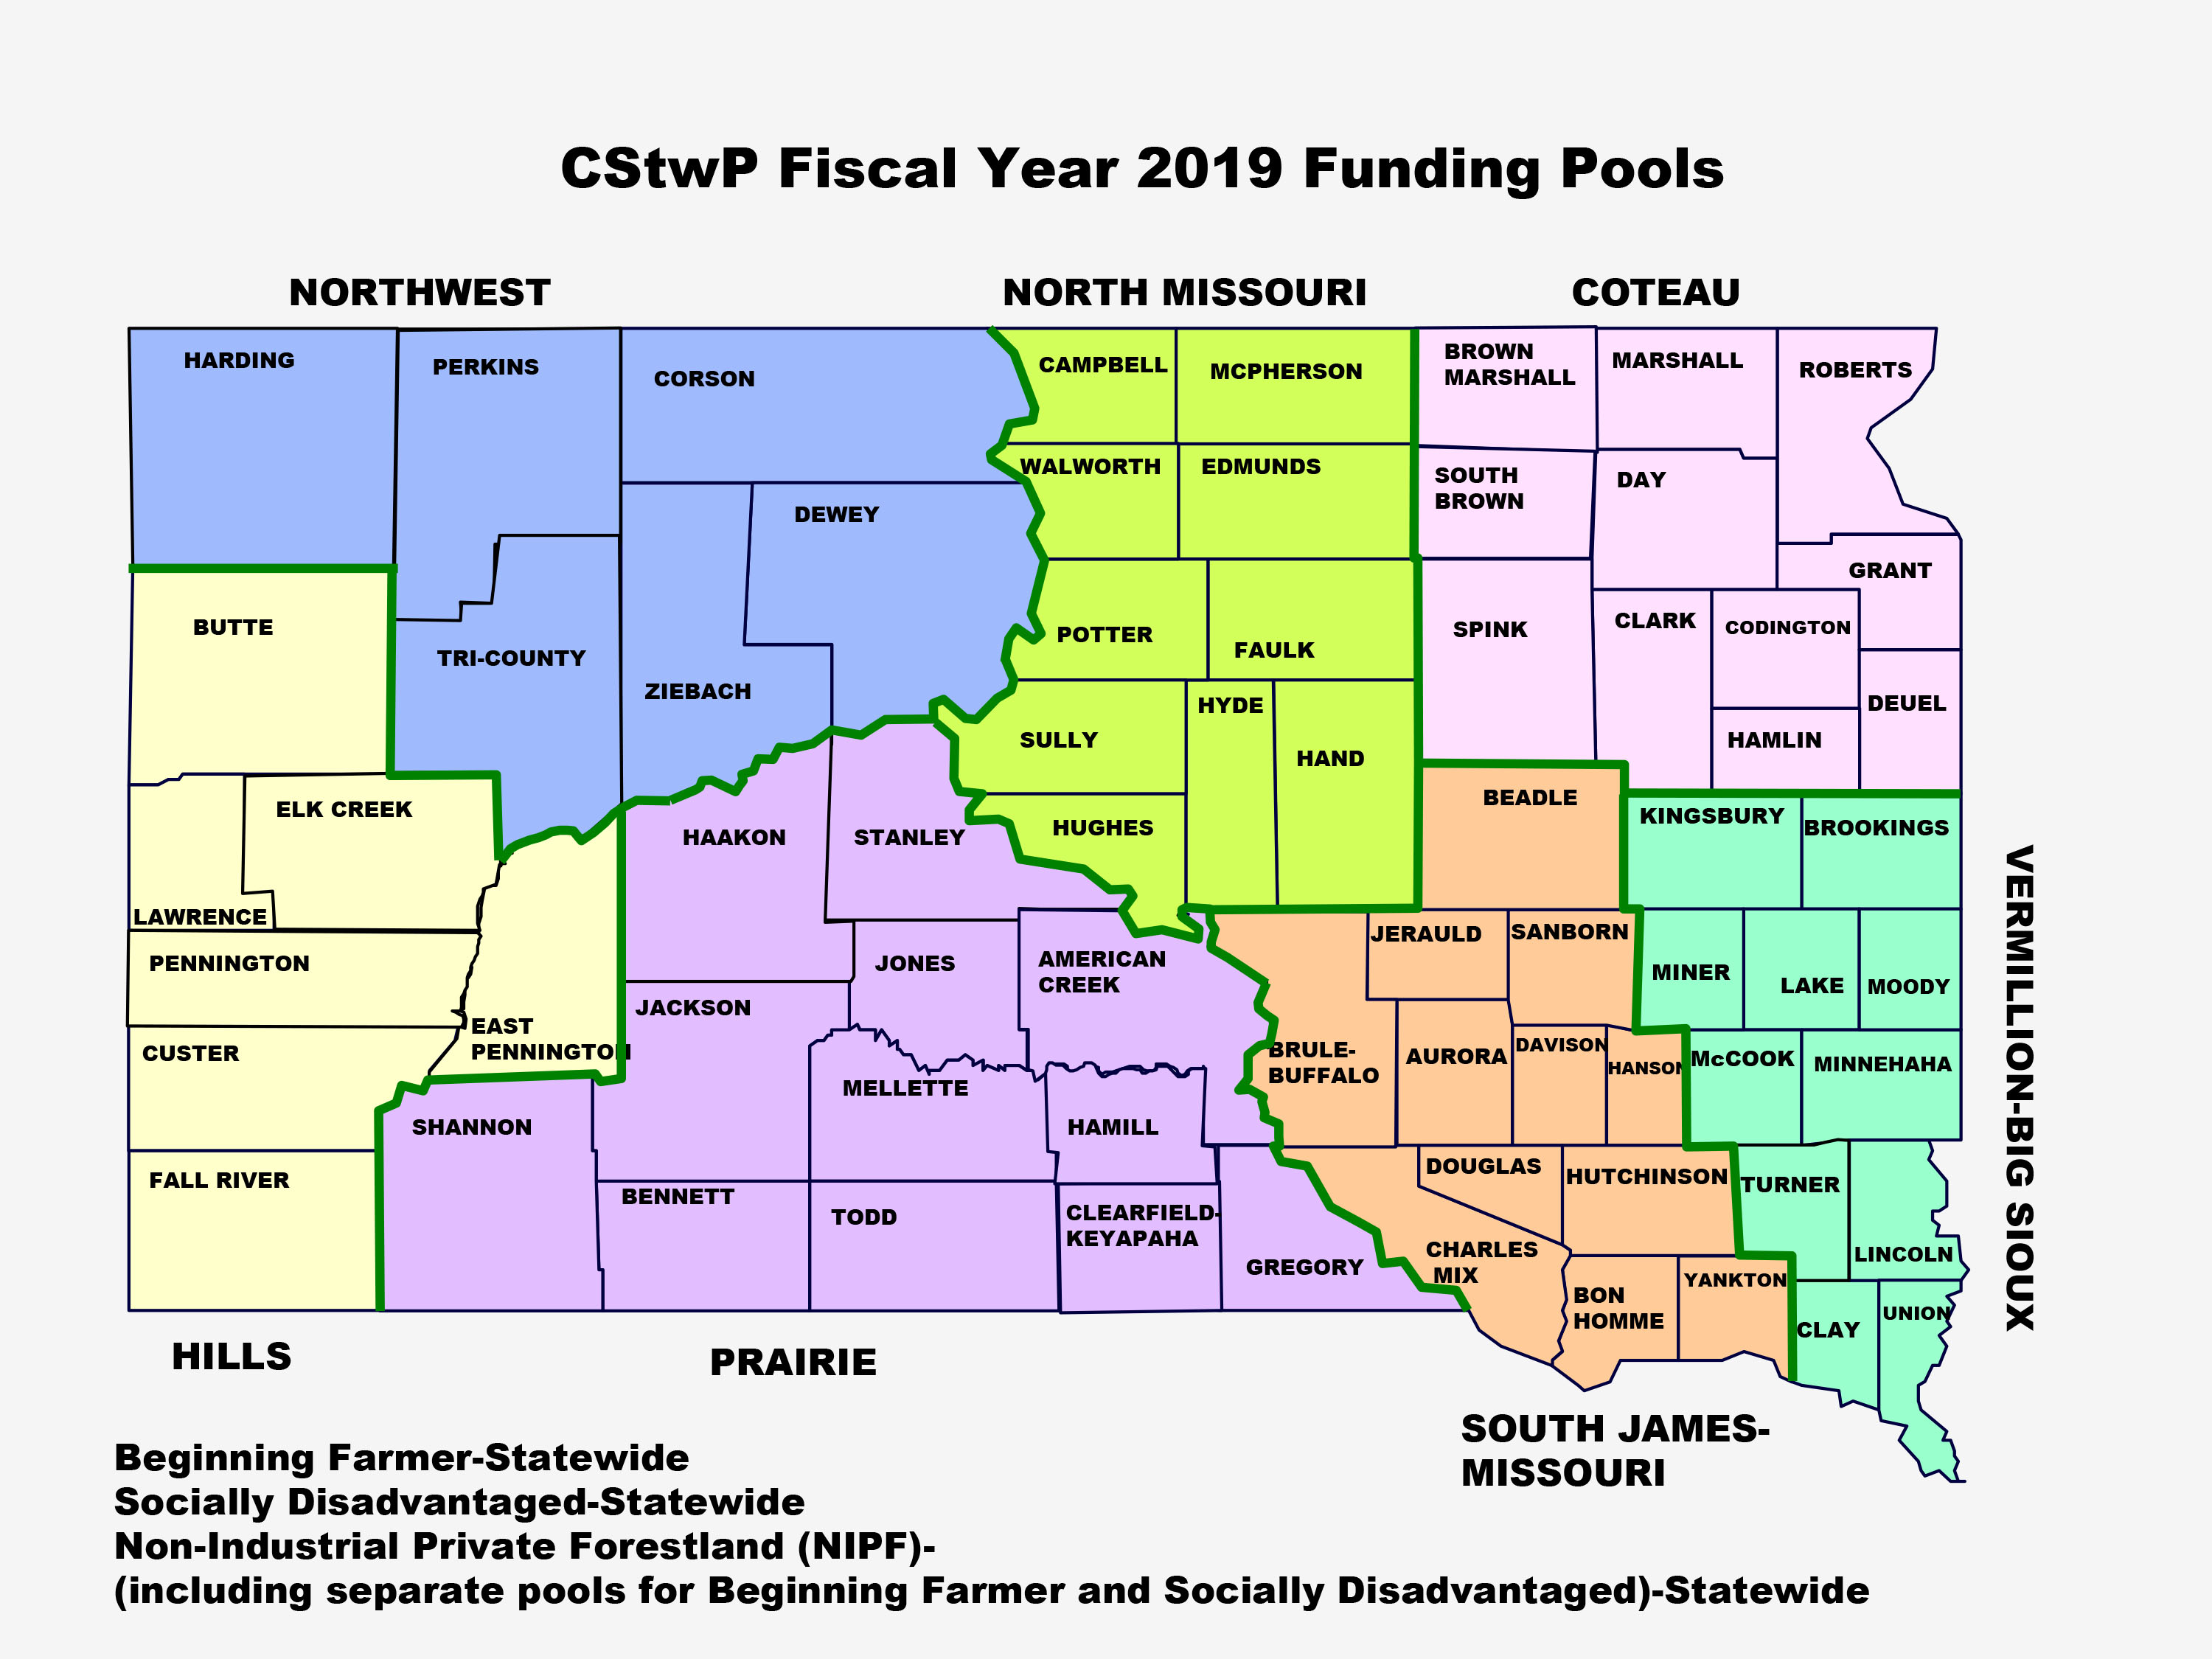 Map of South Dakota with funding pools located